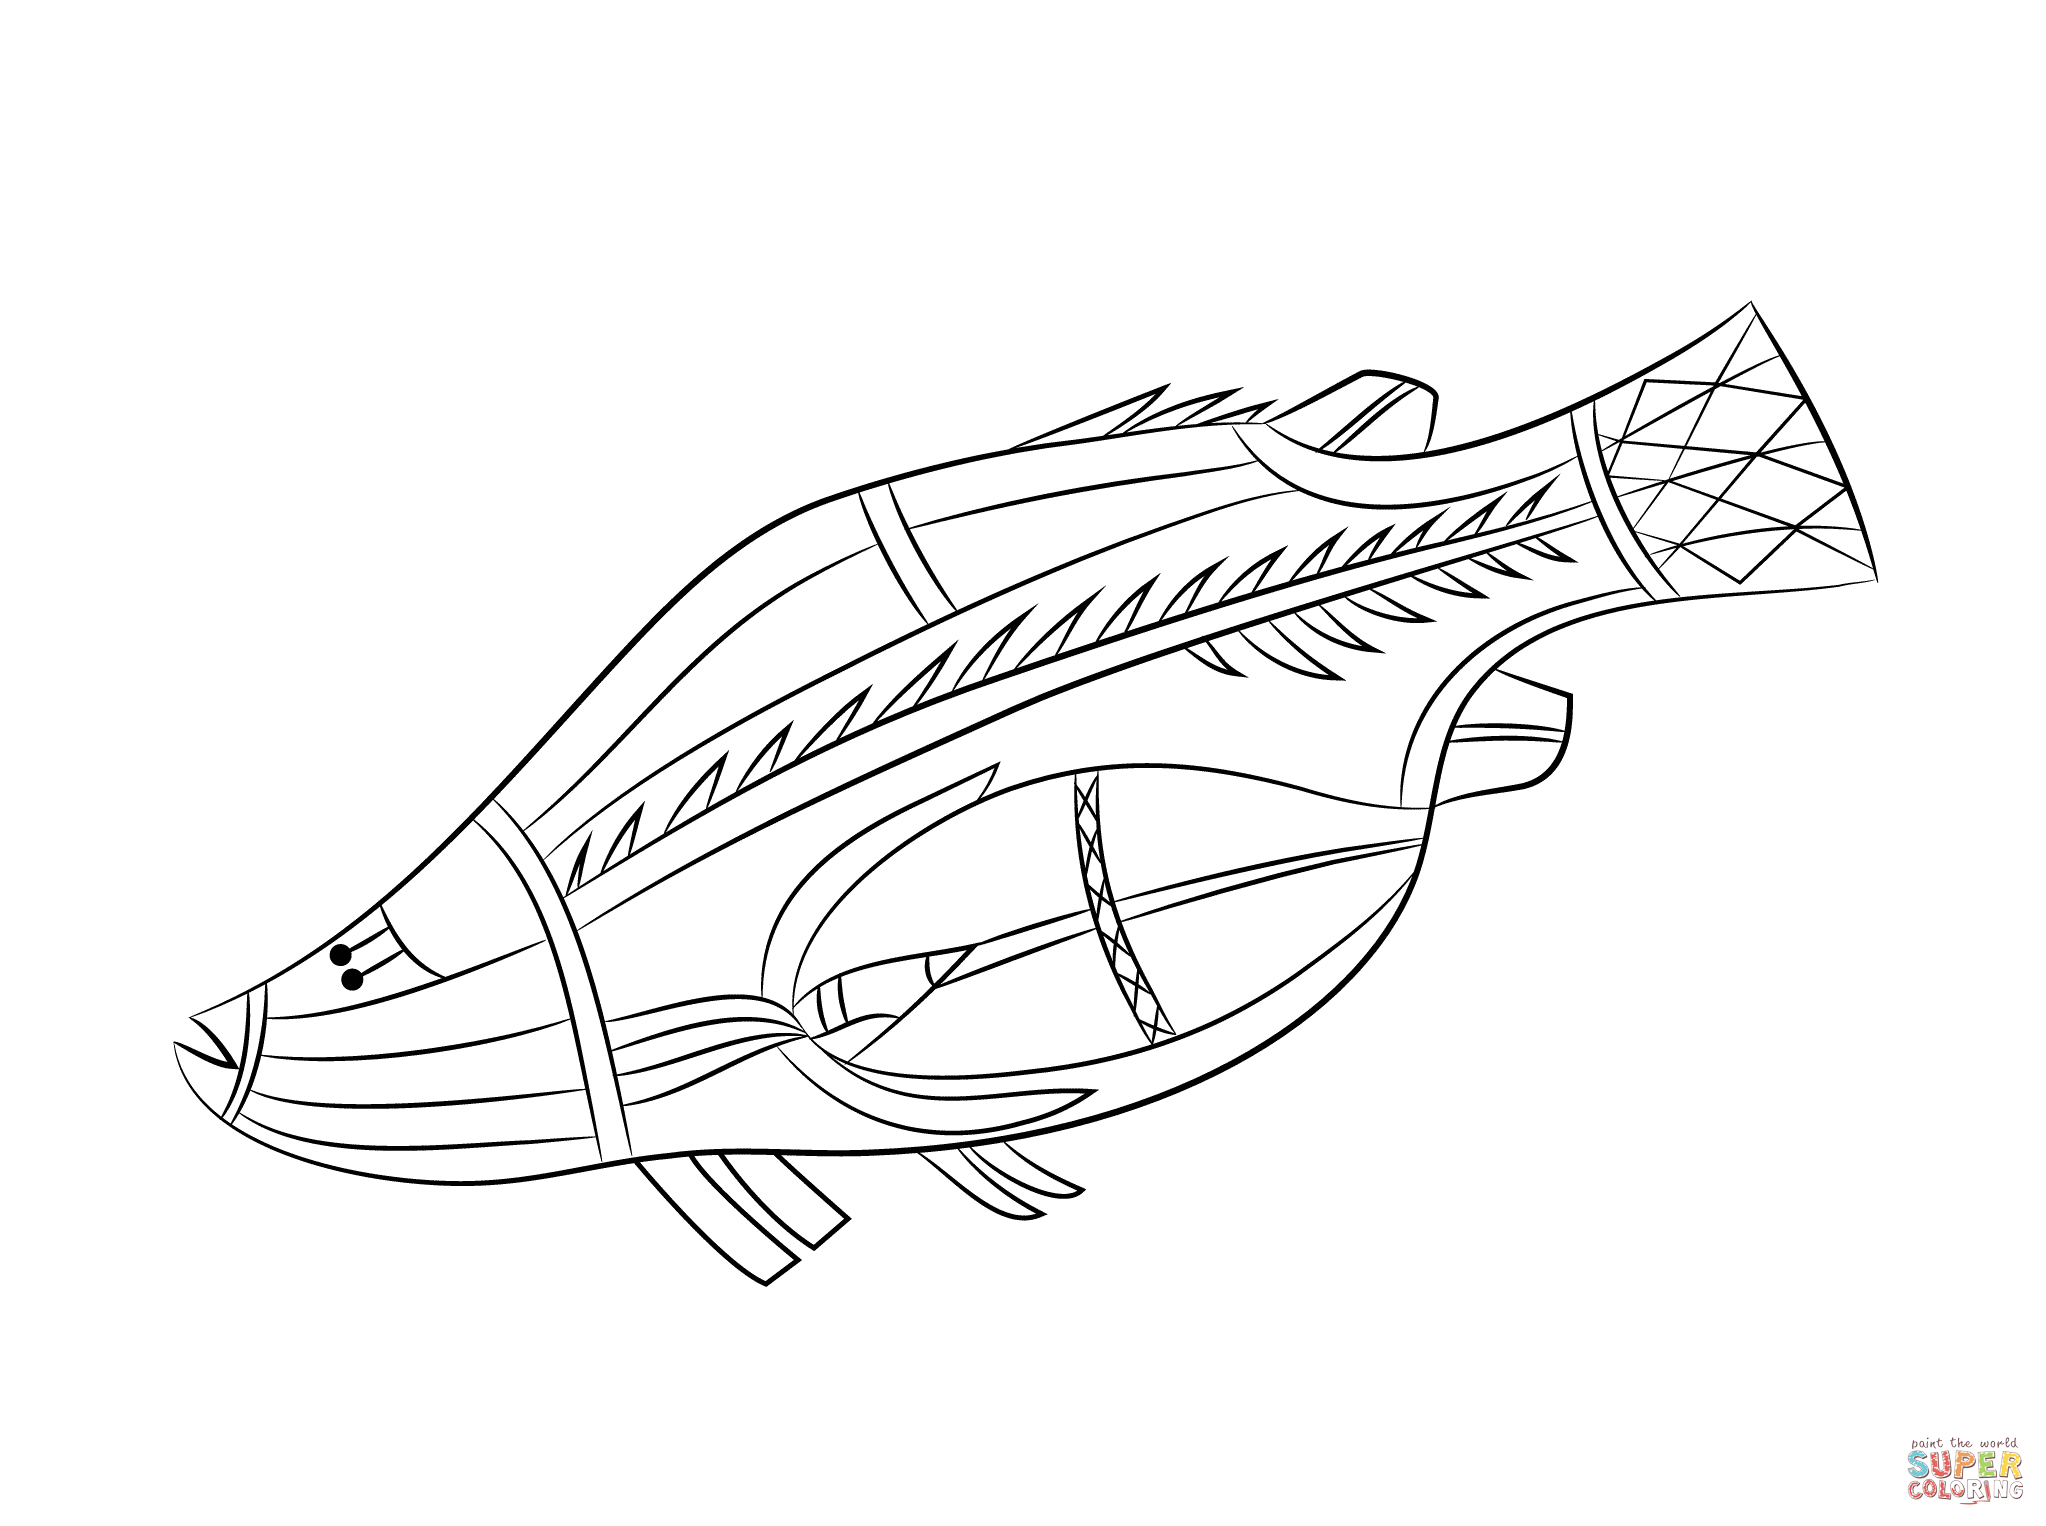 Aboriginal Rock Painting Of Fish Coloring Page | Free Printable - Free Printable Aboriginal Colouring Pages